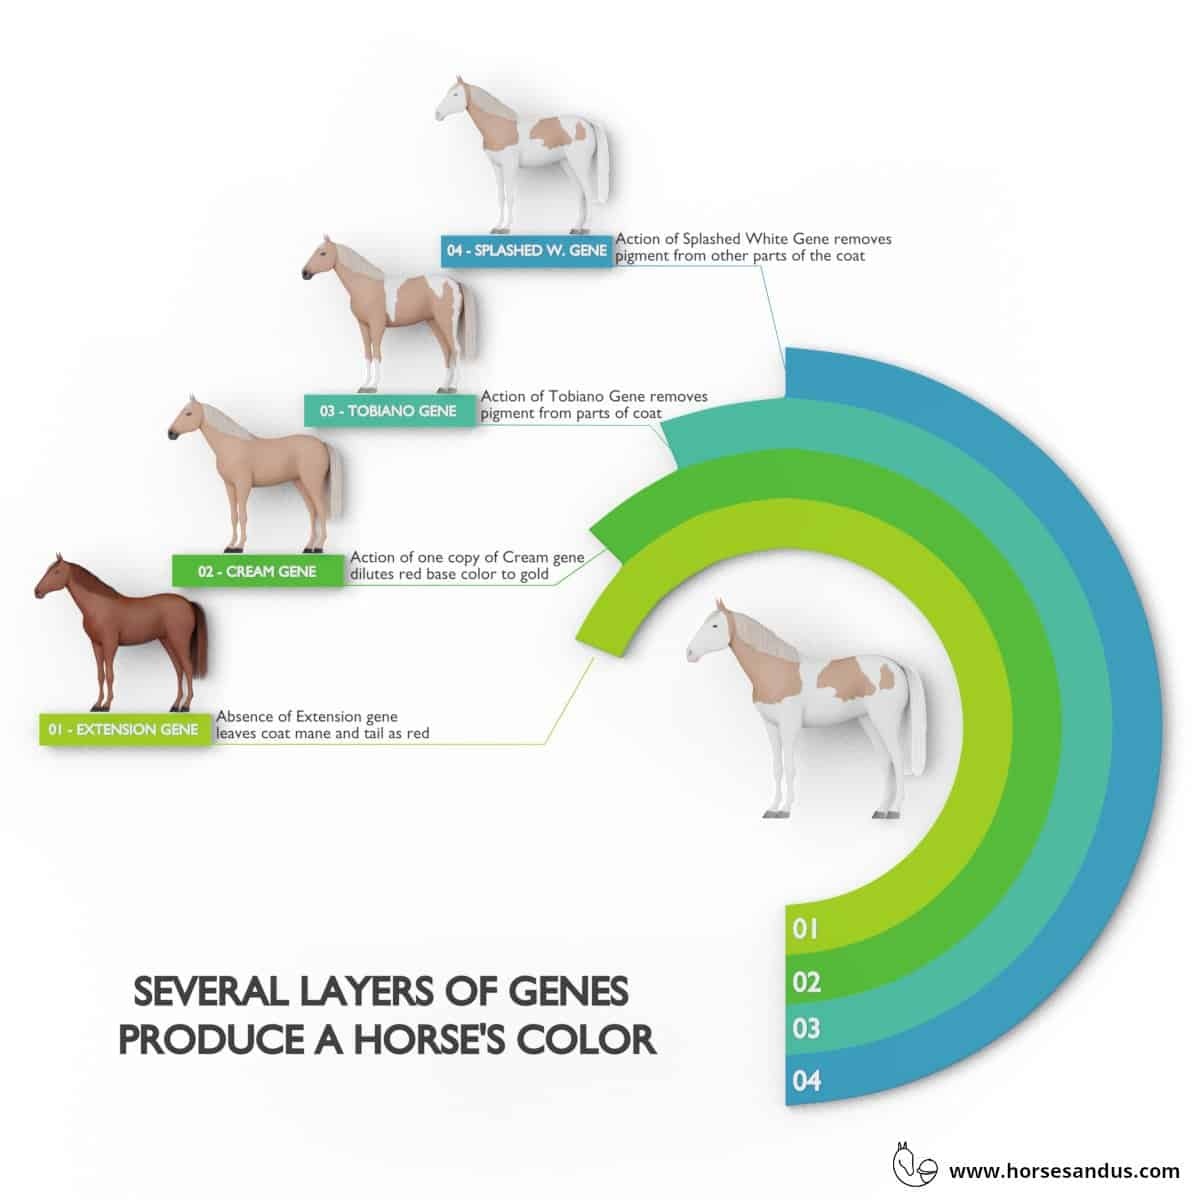 Horse color and pattern - result from several layers of genes